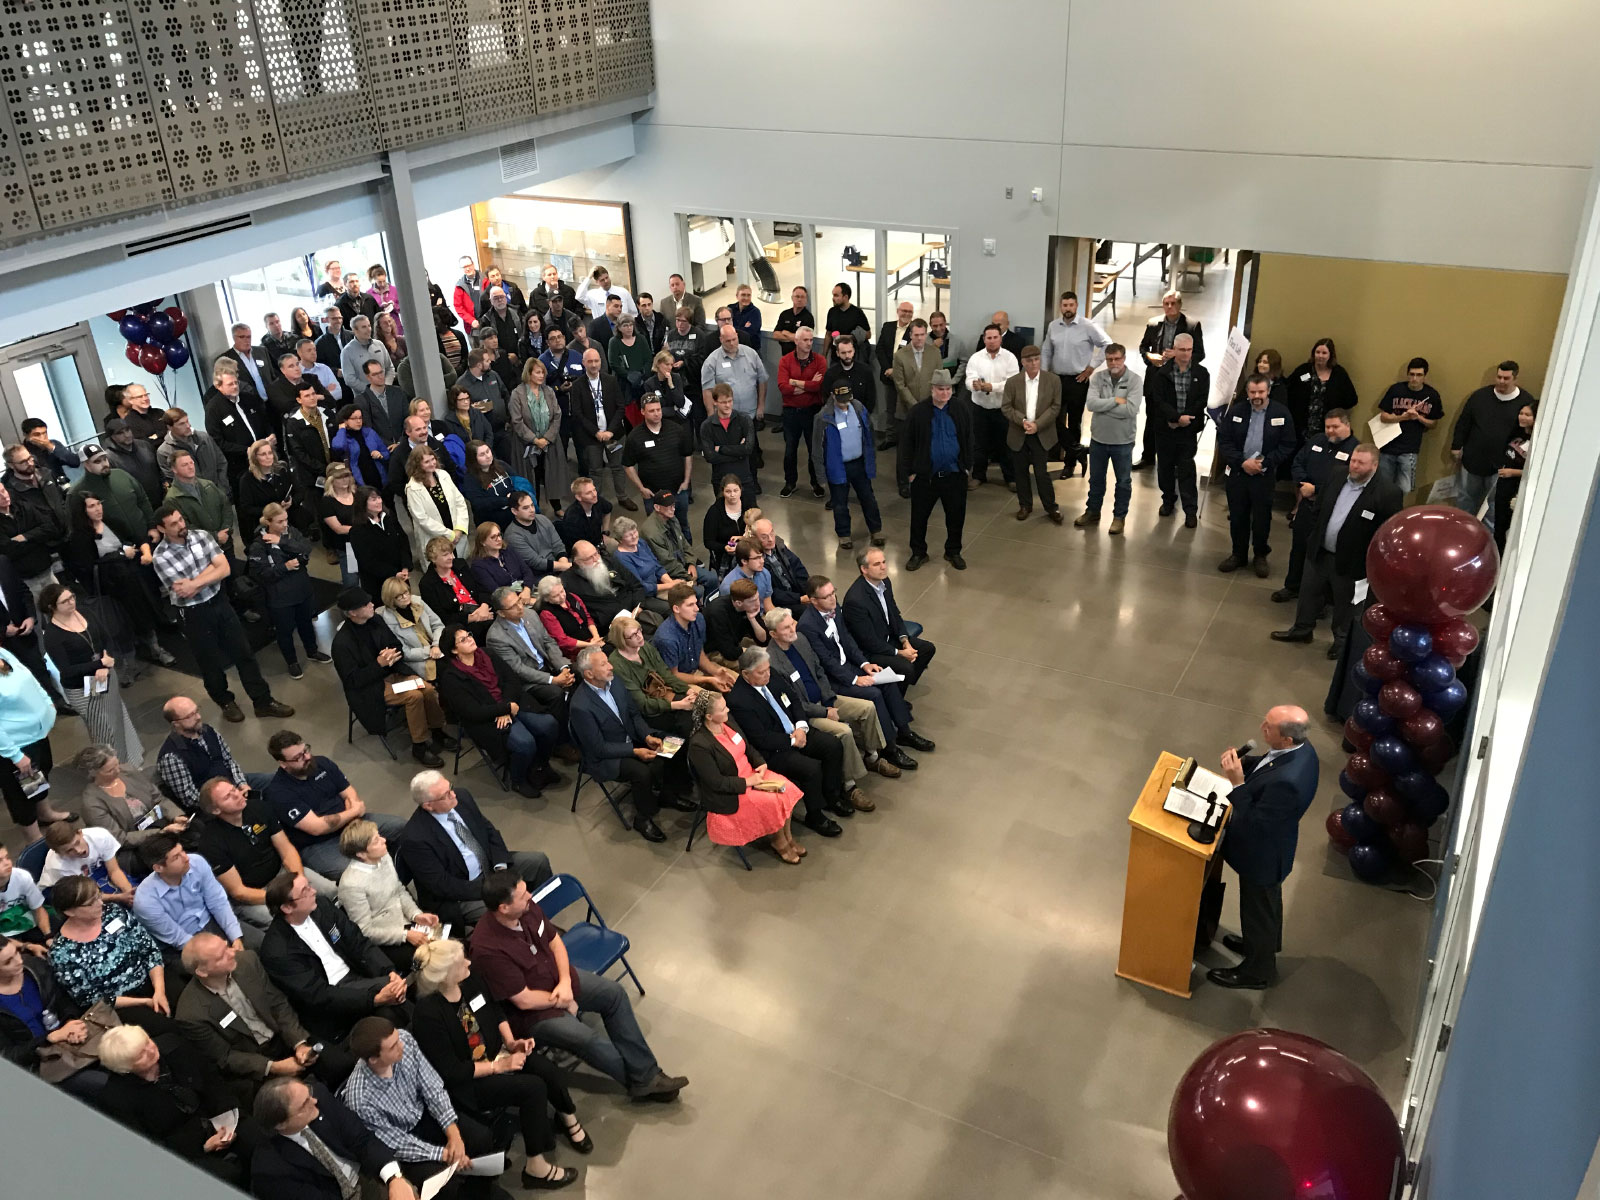 The grand opening of the Industrial Technology Center with a large audience and speakers